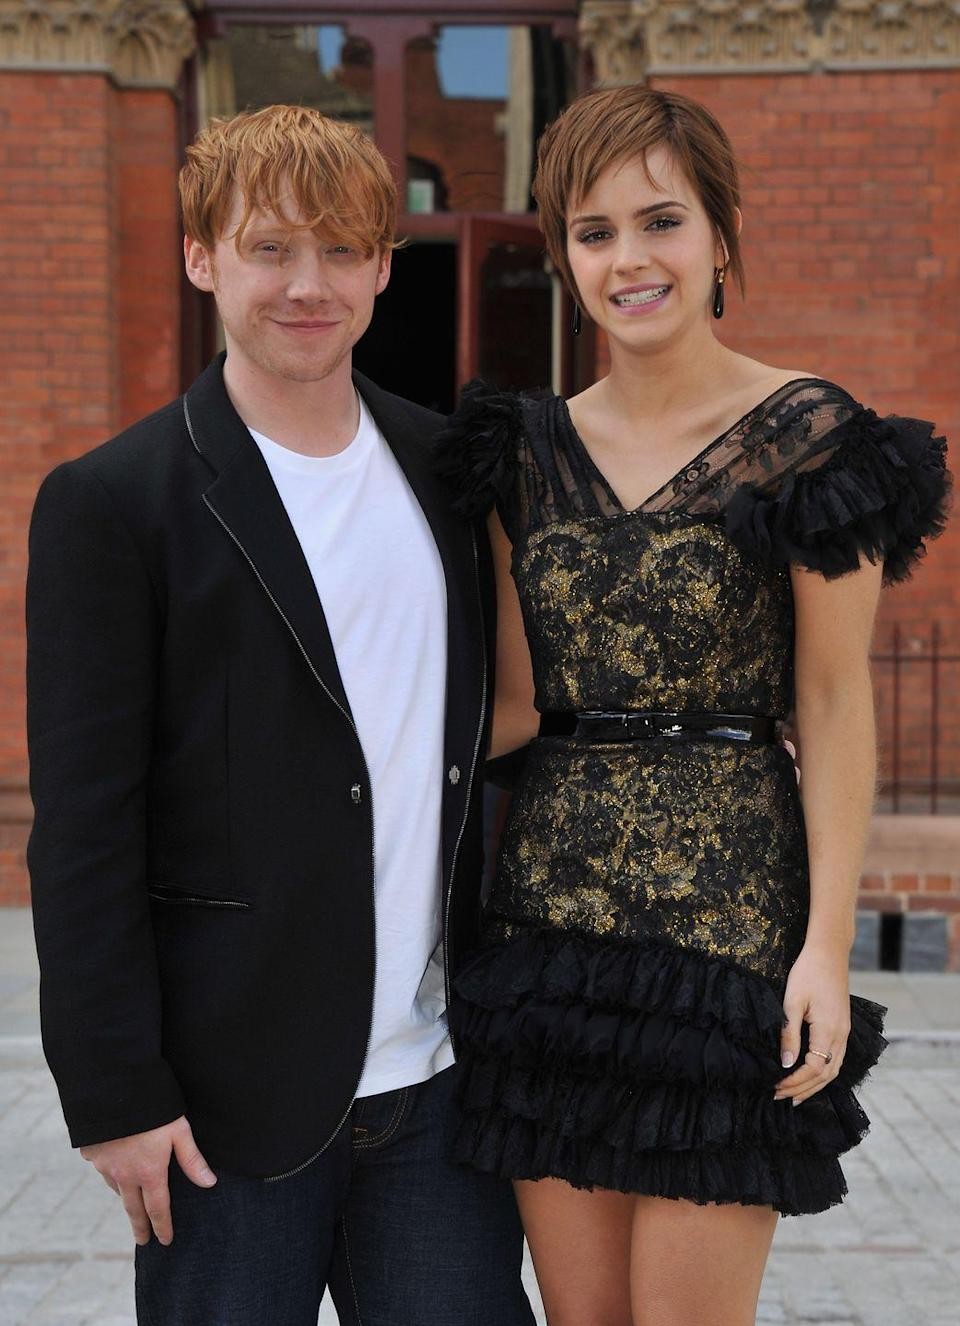 "<p>Seeing the romance between Hermione Granger and Ron Weasley blossom on screen was a moment anticipated by <em>Harry Potter </em>maniacs ever since things started heating up between the two on page. Emma Watson, on the other hand, was so eager to get the awaited scene over with that she ended up ""pouncing"" on Rupert Grint, according to an interview with <a href=""http://www.mtv.com/news/1615730/harry-potter-star-emma-watson-on-awkward-kiss-with-rupert-grint/"" rel=""nofollow noopener"" target=""_blank"" data-ylk=""slk:MTV News"" class=""link rapid-noclick-resp"">MTV News</a>.</p>"